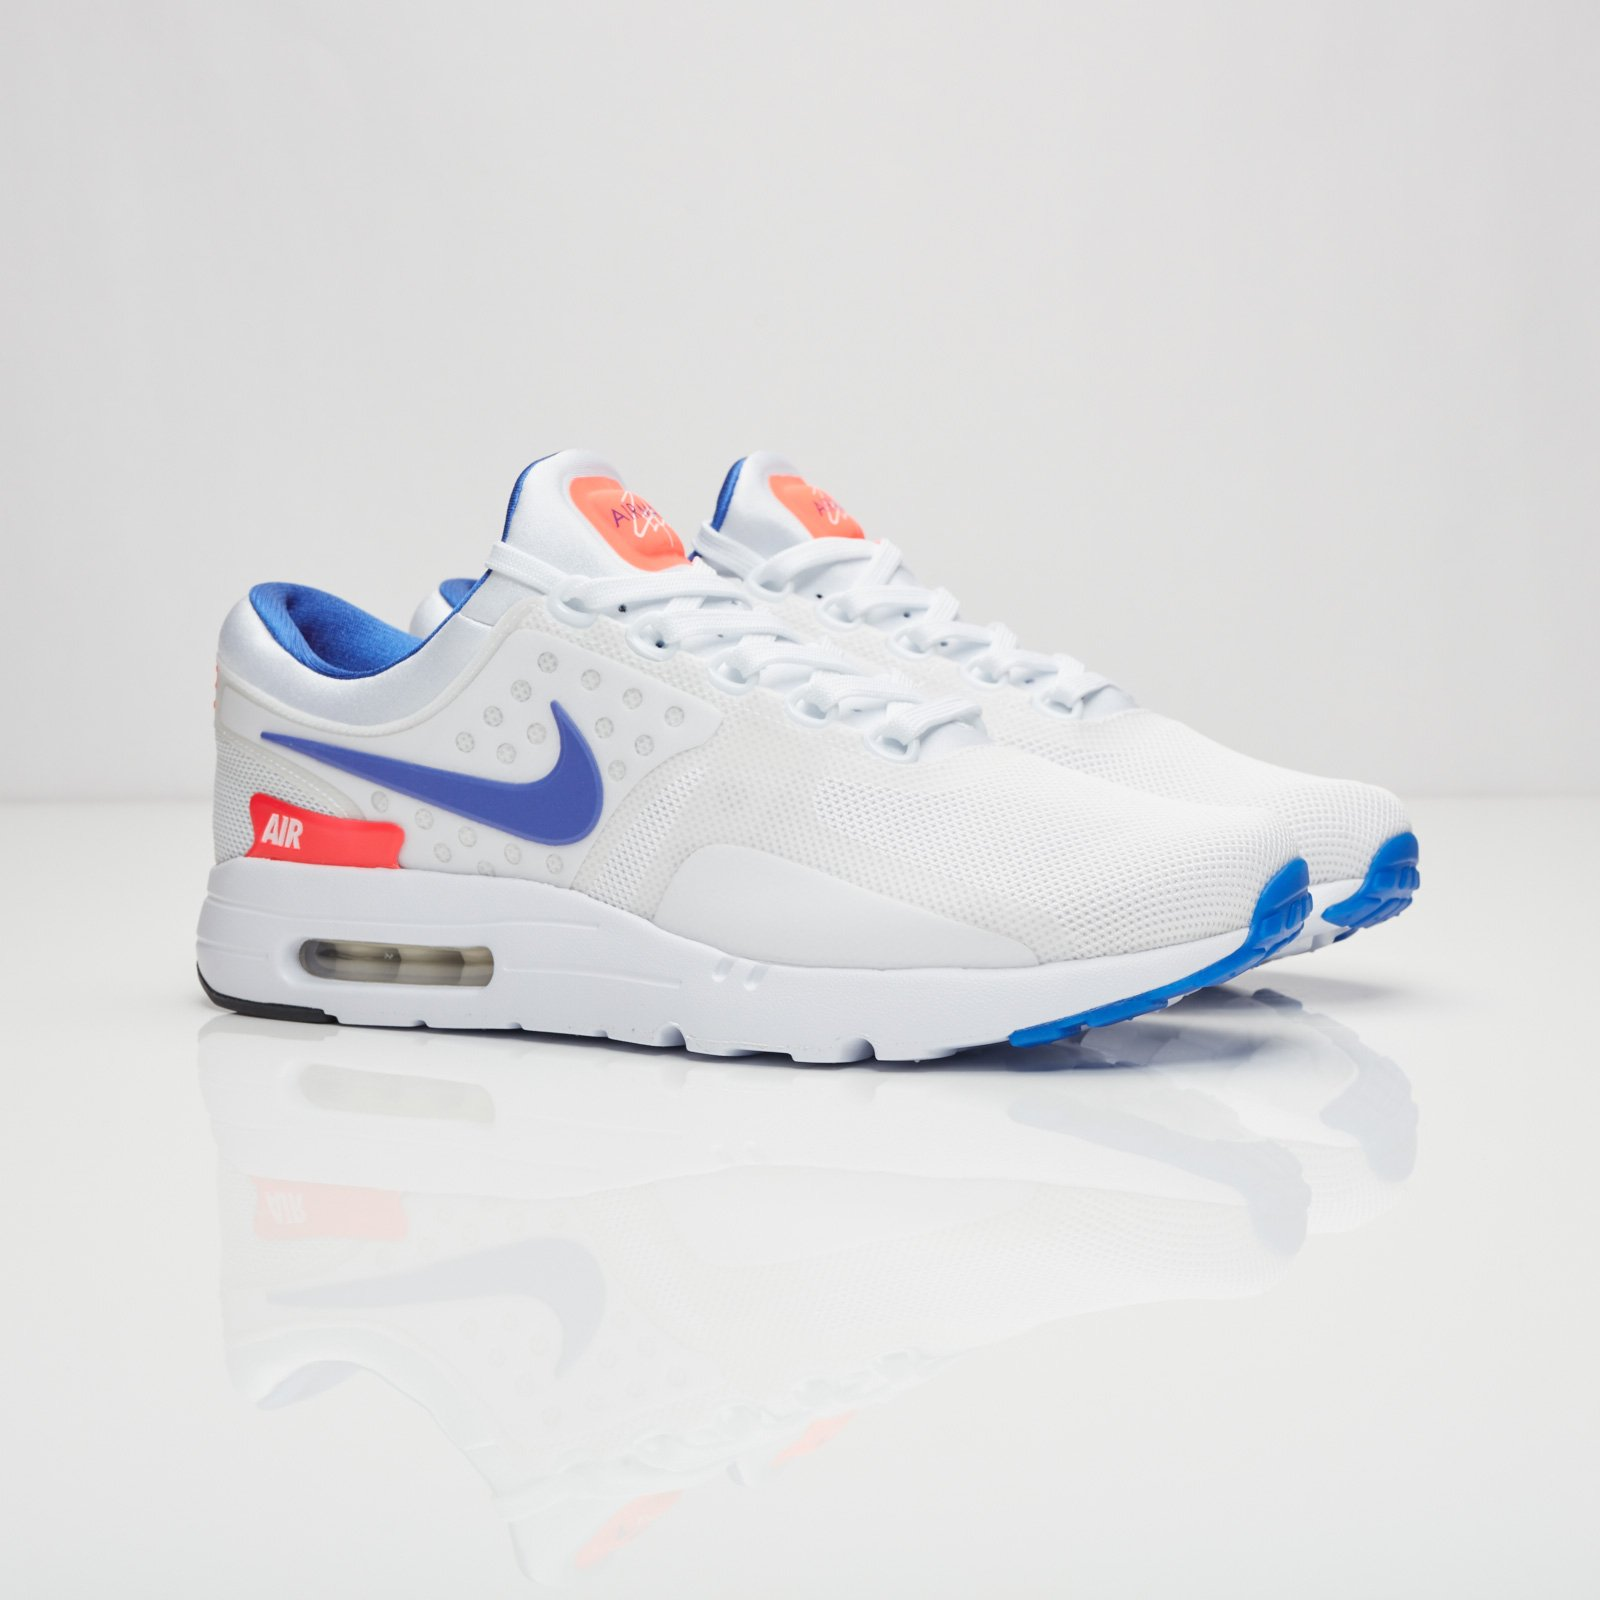 1a48d69b4e97 authentic nike air max zero qs ultramarine blue d32e1 fdf0a